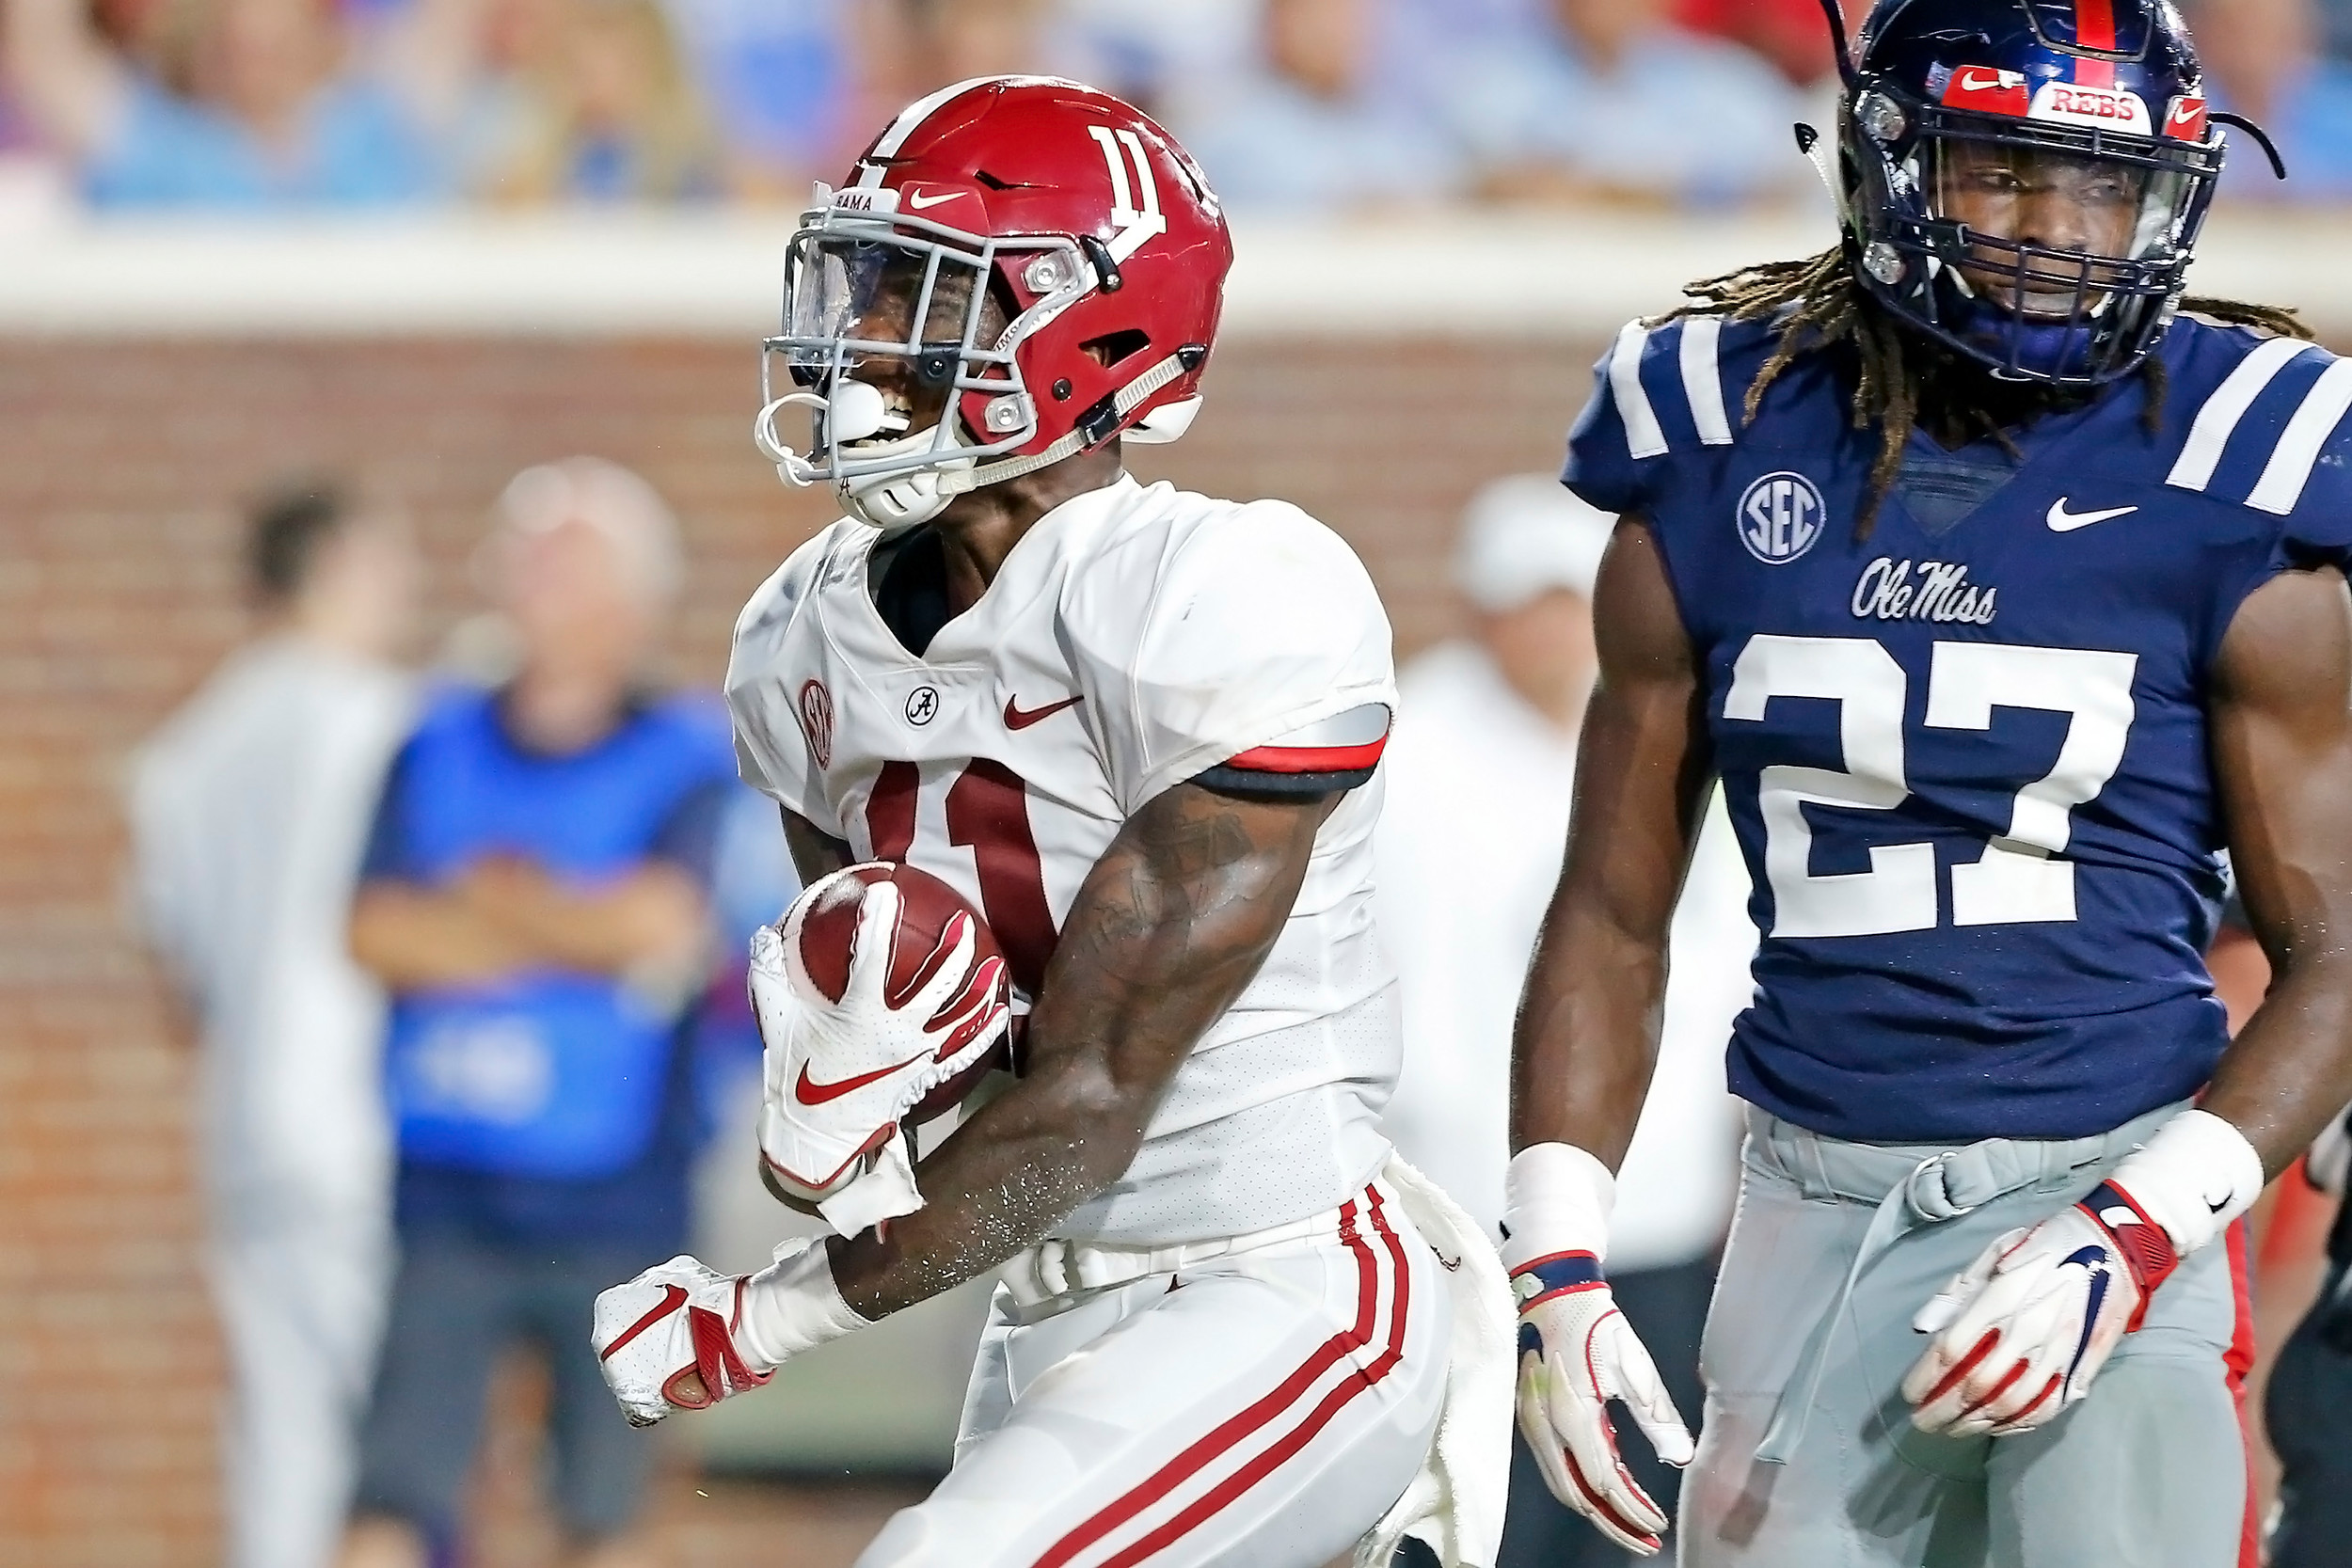 Alabama Crimson Tide wide receiver Henry Ruggs III (11) celebrates after a touchdown during the game between the University of Alabama and Ole Miss at Vaught-Hemingway Stadium. Jason Clark / Daily Mountain Eagle